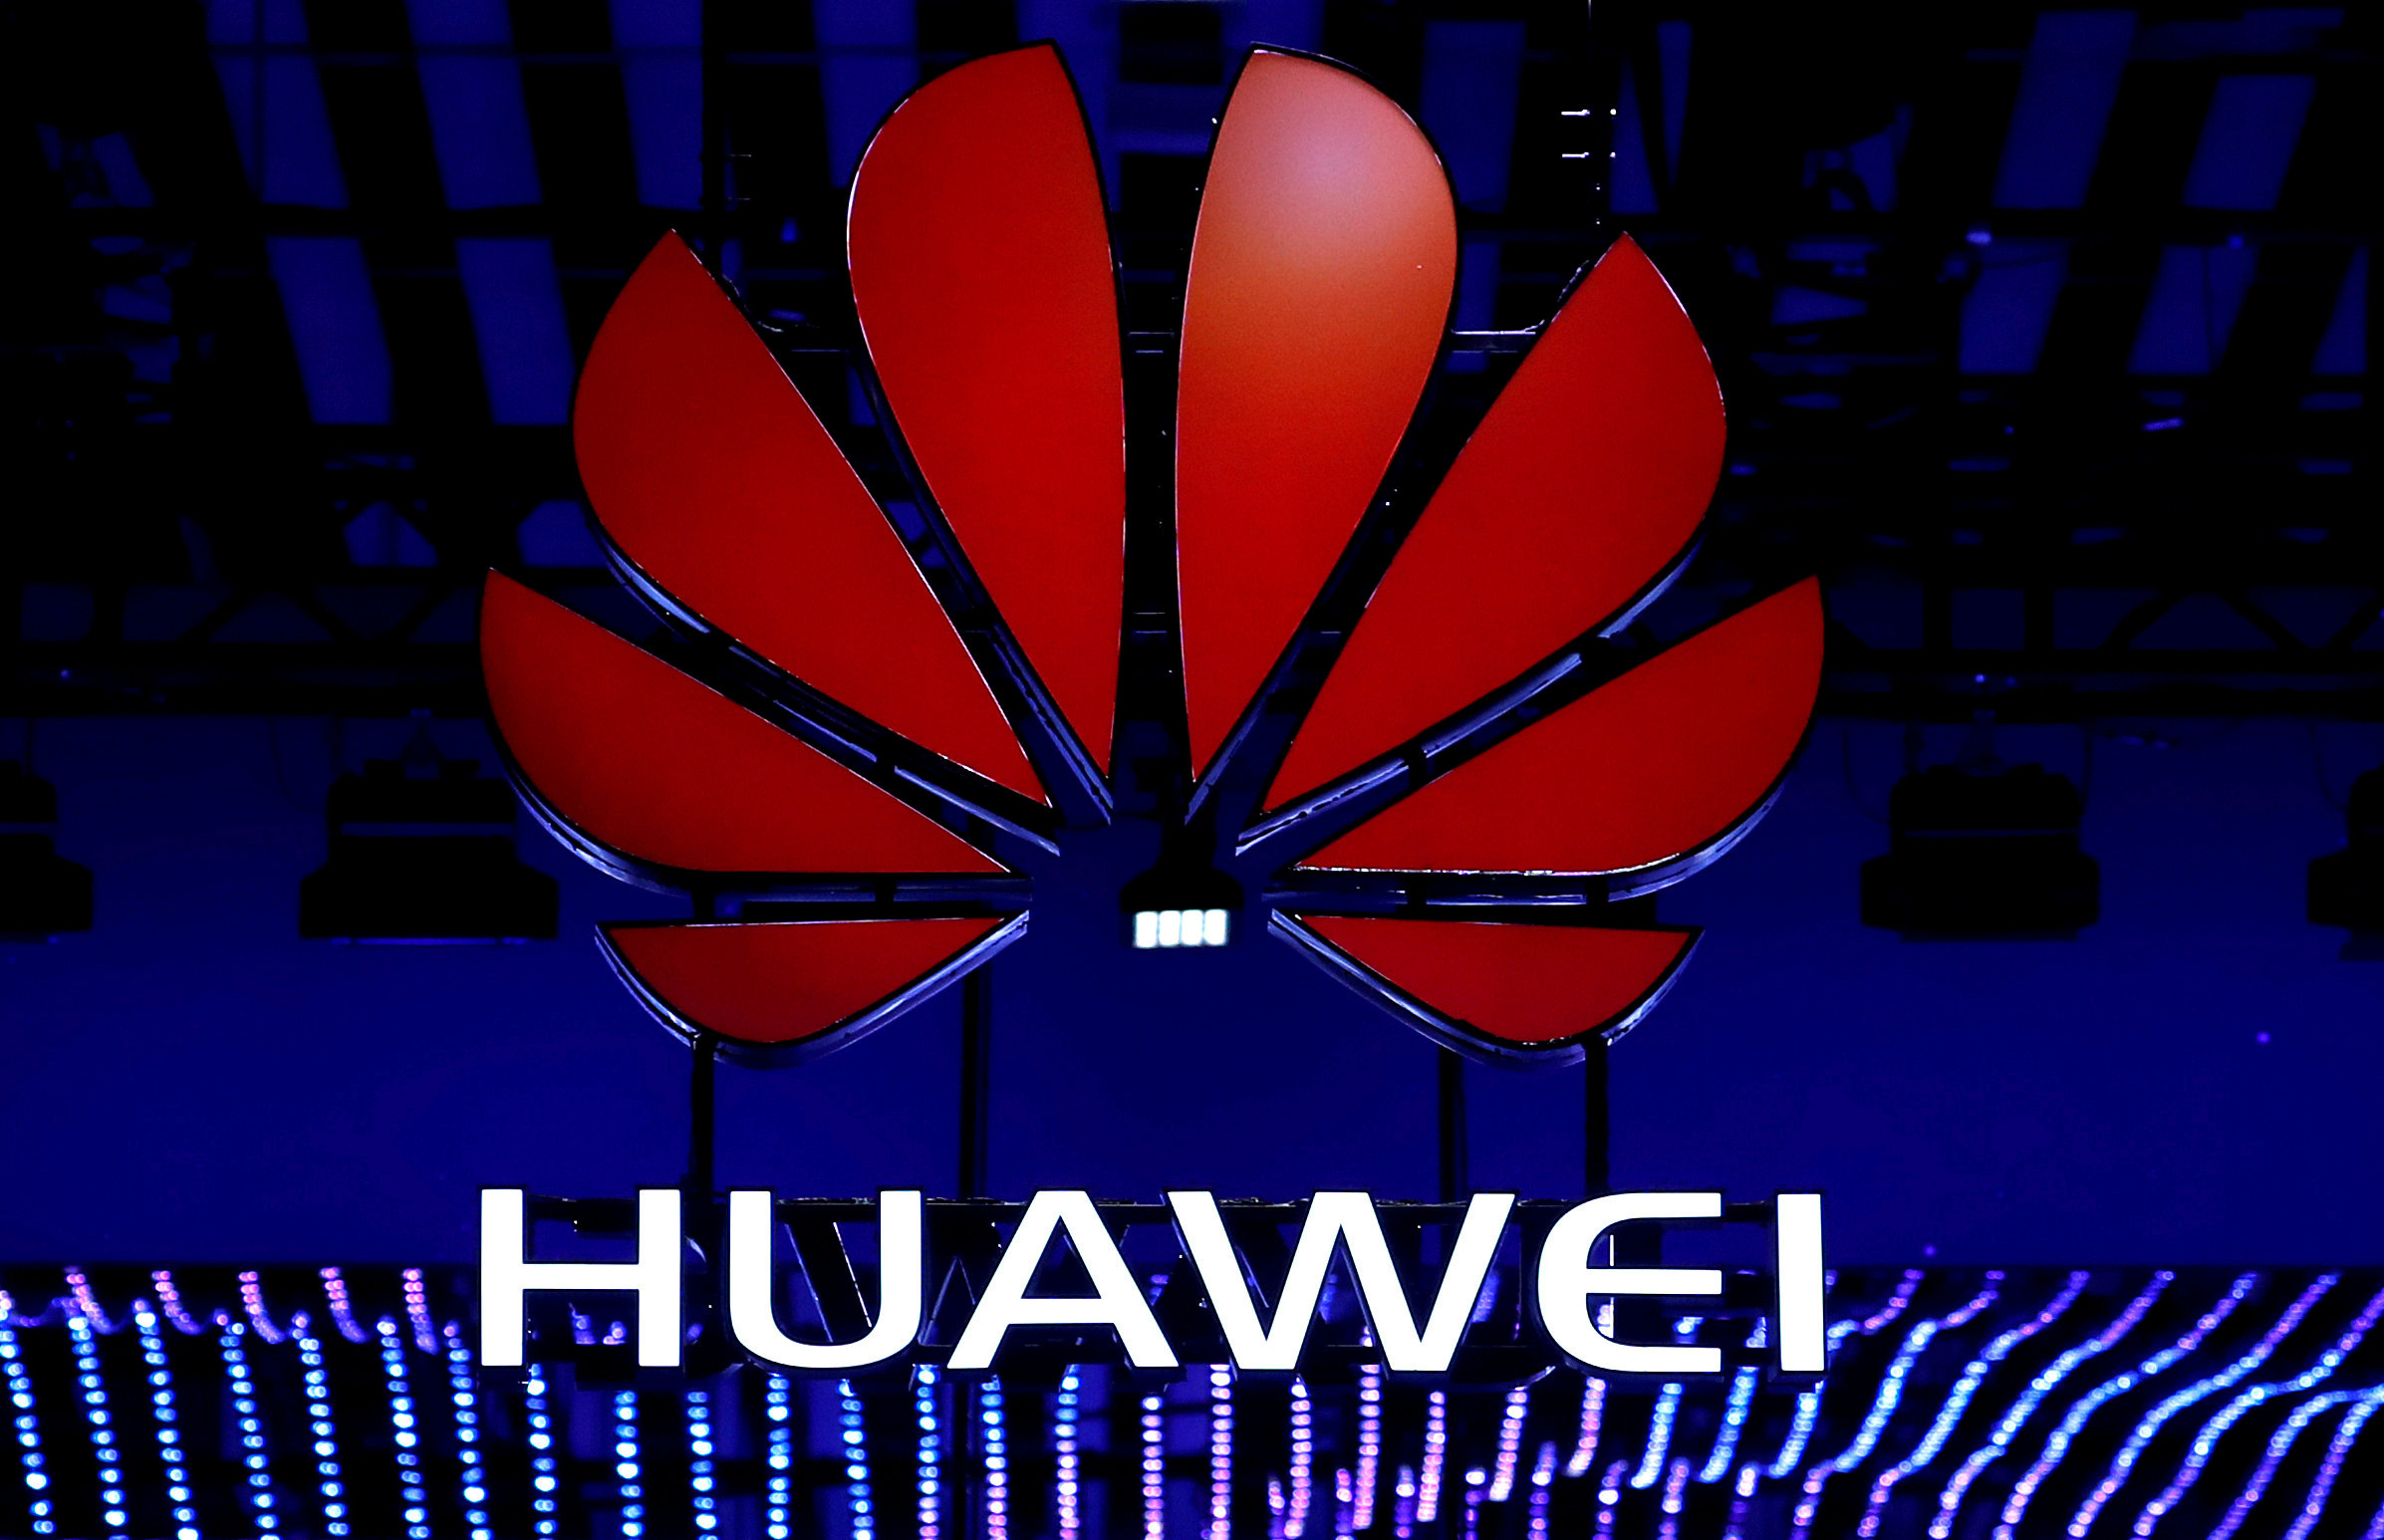 Huawei has continued to maintain that it can continue to succeed regardless, with alternatives to Google Mobile Services such as Huawei Mobile Services being aggressively developed since the ban. — Reuters pic